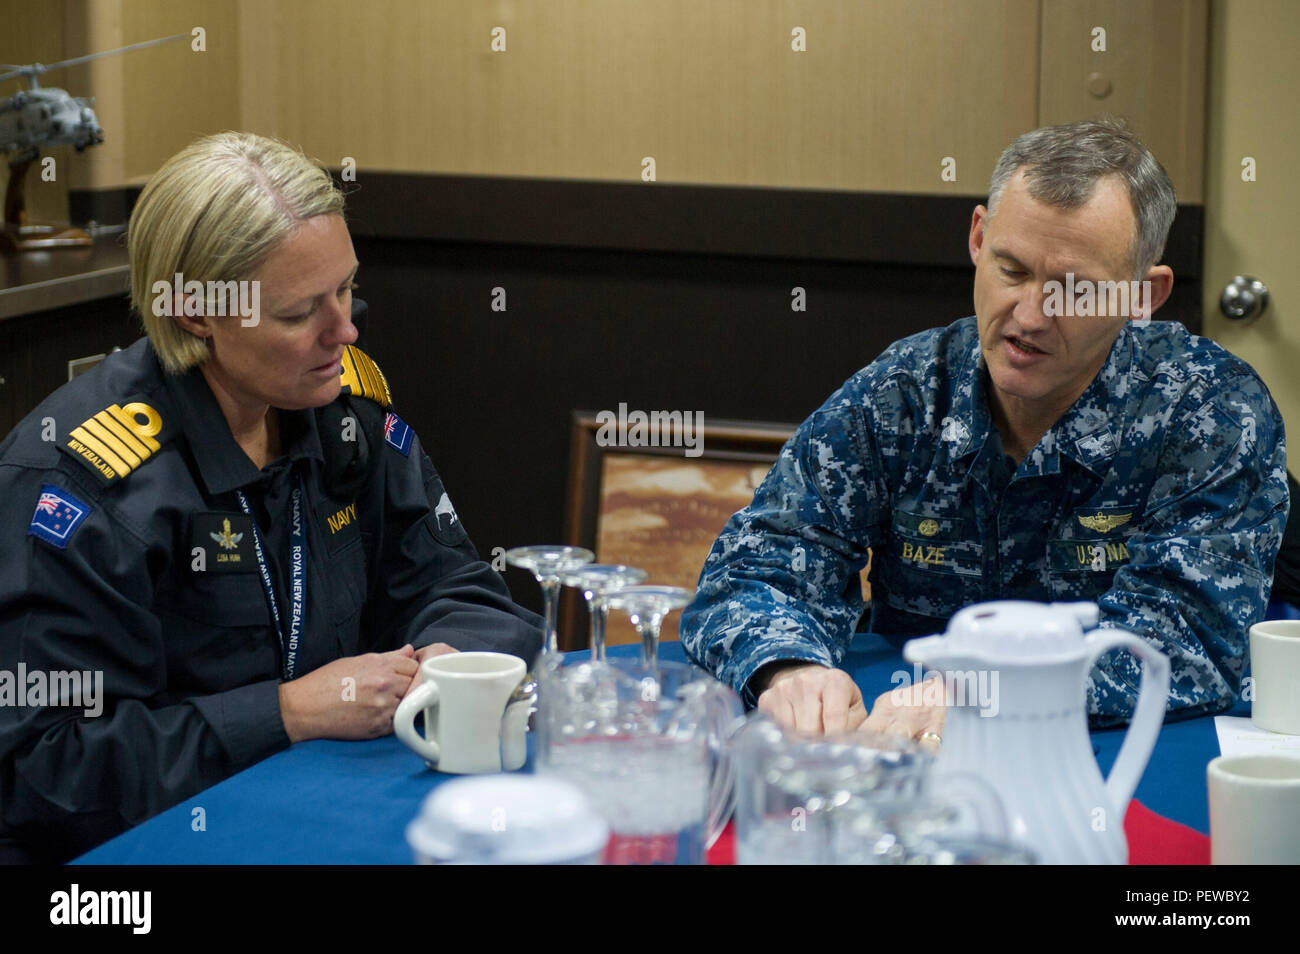 160204-N-VR008-066 SAN DIEGO (Feb. 4, 2016) – Capt. Michael W. Baze, commanding officer of the amphibious assault ship USS America (LHA 6), discusses operations with New Zealand Royal Navy Capt. Lisa Hunn during a tour of the ship. America is currently undergoing a post-shakedown availability (PSA) in which the ship's crew and assigned contractors make improvements to the ship's design. (U.S. Navy photo by Mass Communication Specialist 3rd Class Kyle Goldberg/Released) - Stock Image